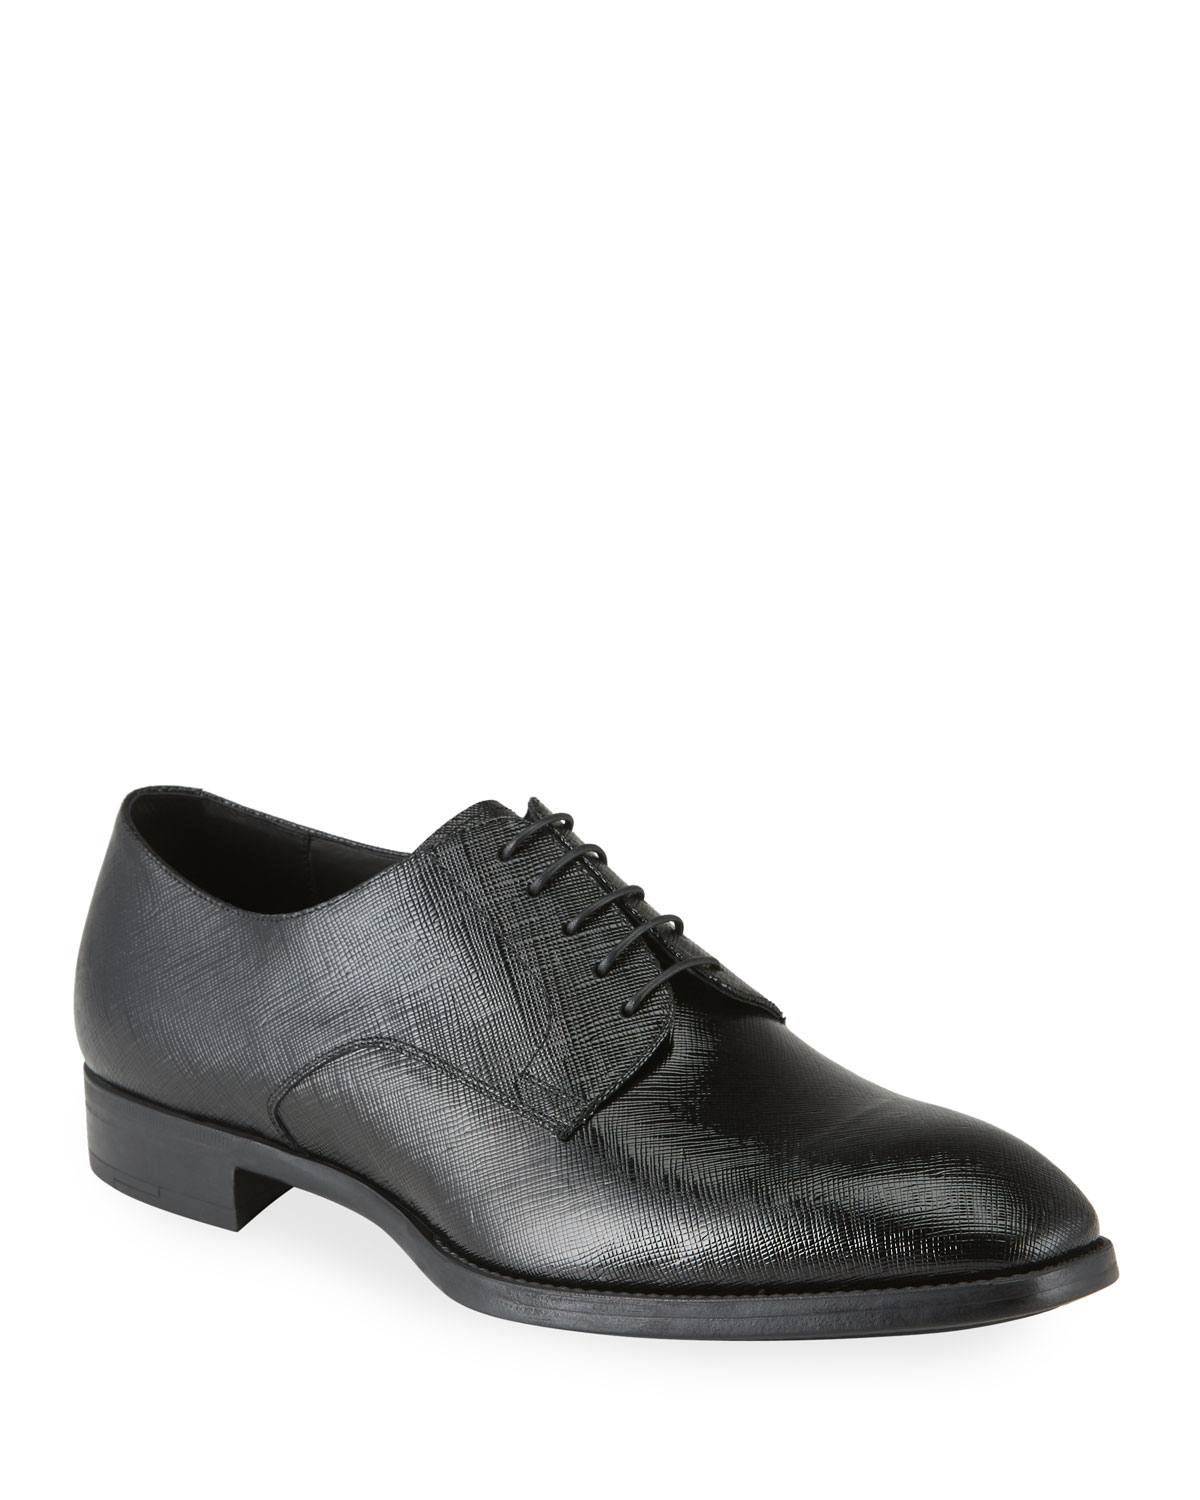 Giorgio Armani Men's Textured Patent Leather Formal Derby Shoes